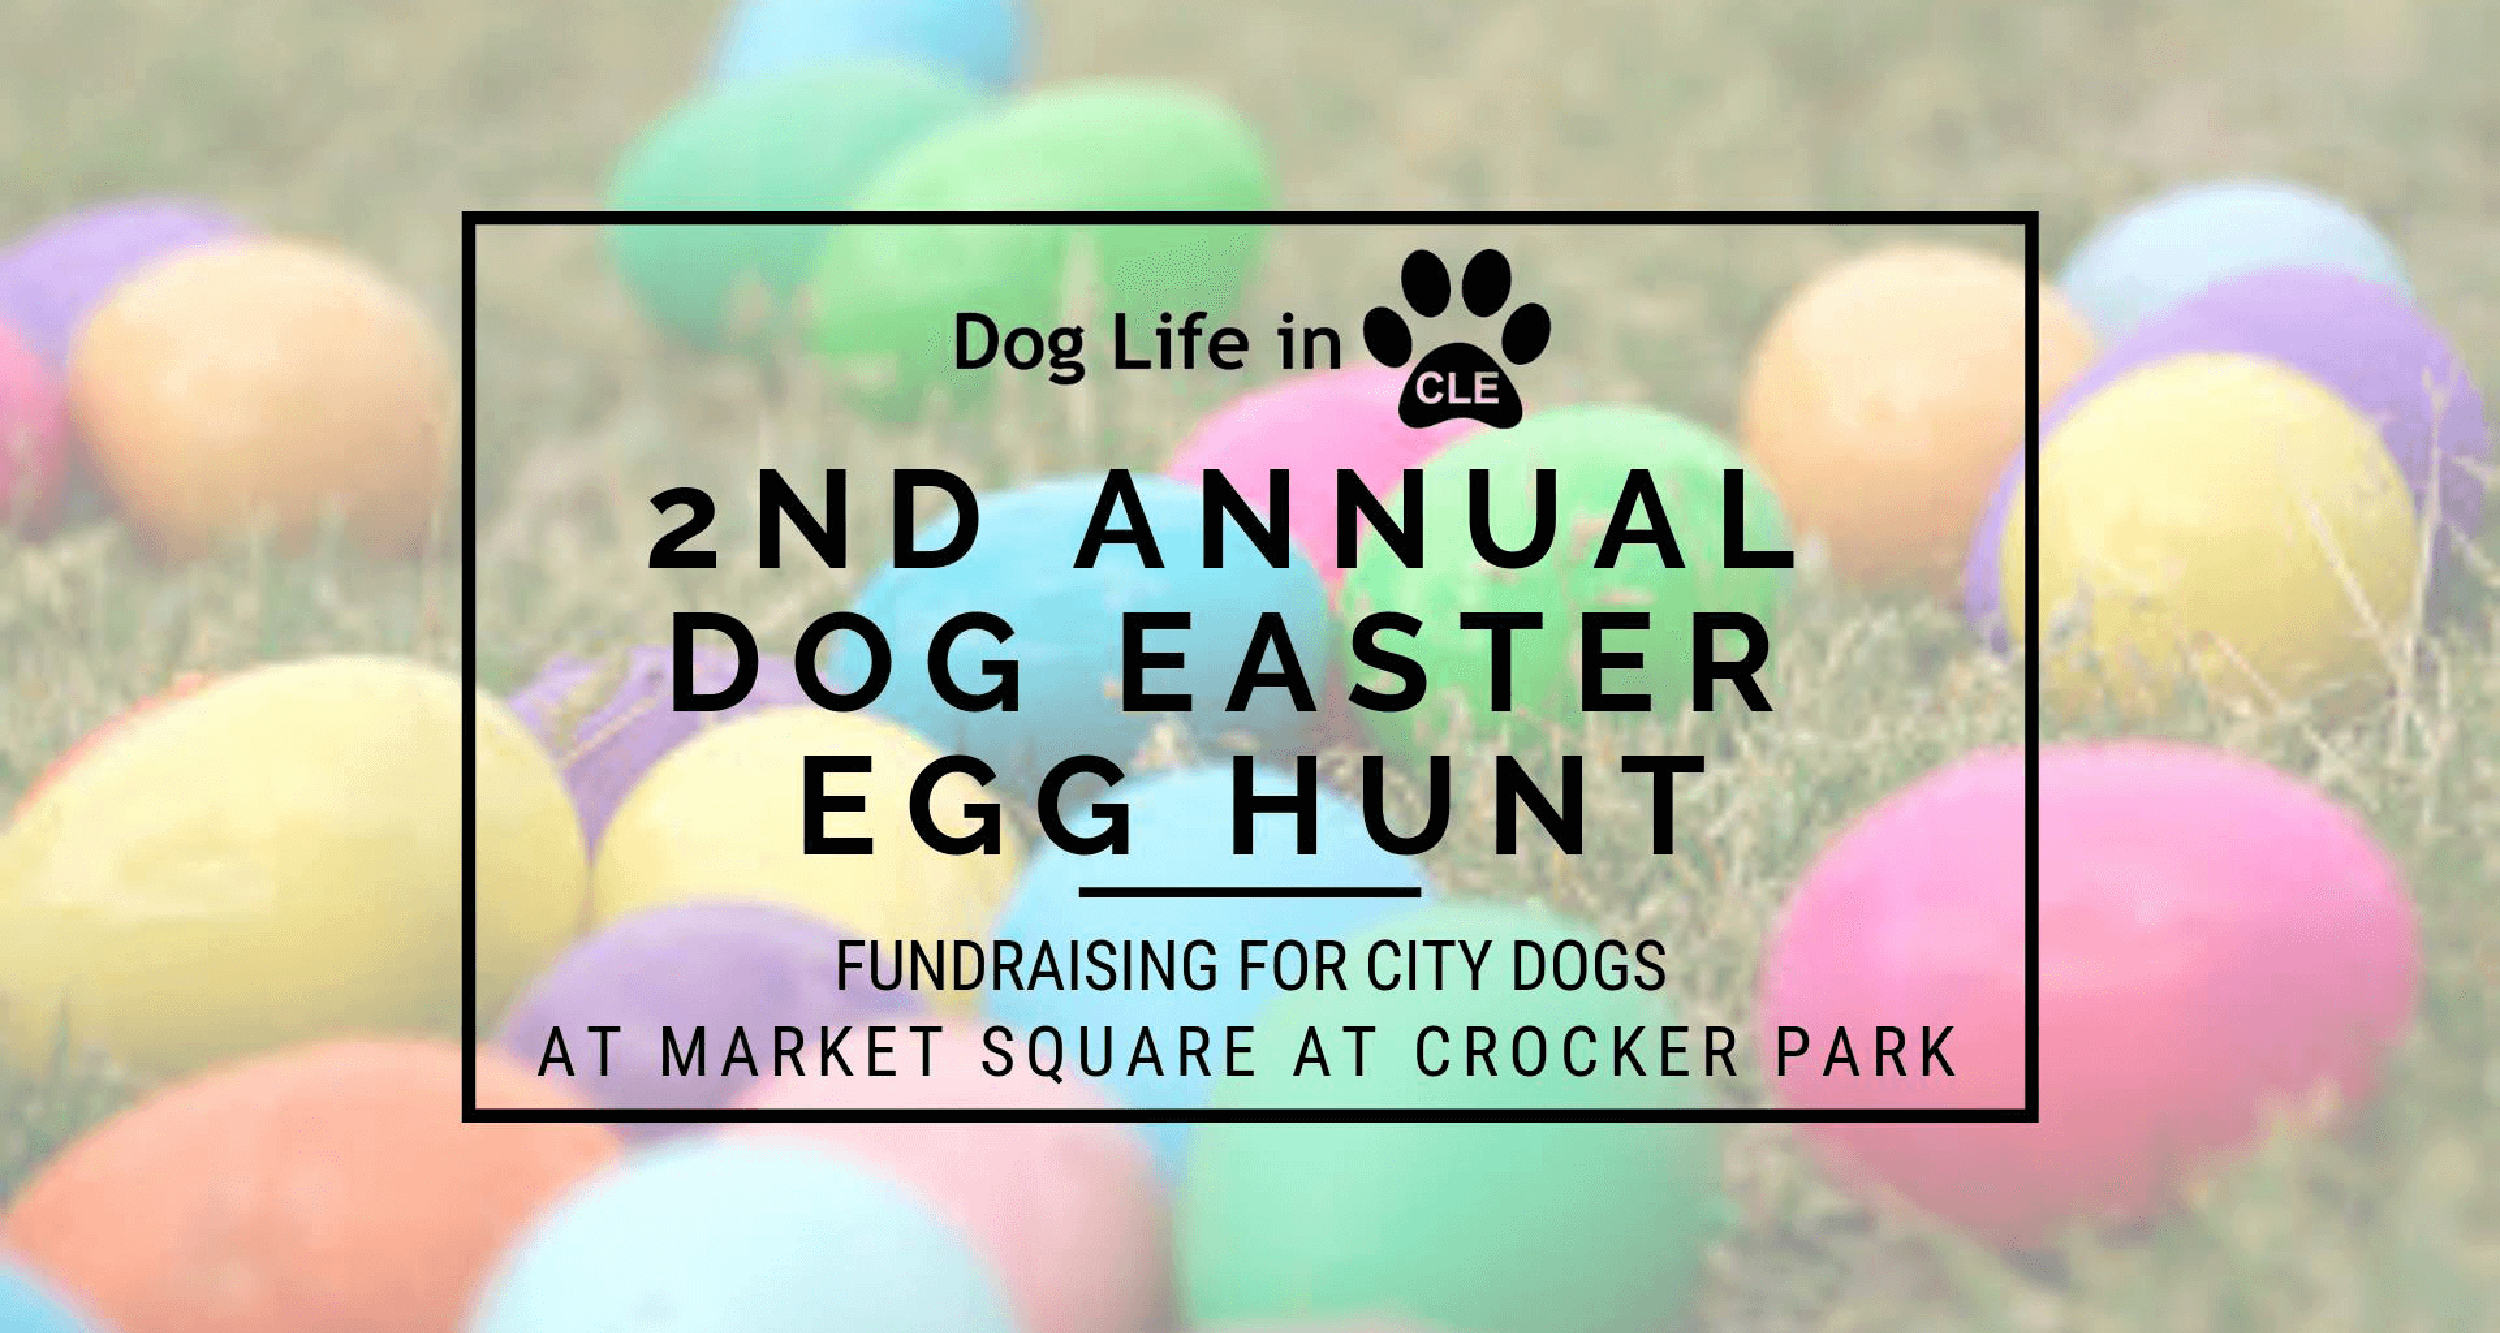 2nd Annual Dog Easter Egg Hunt